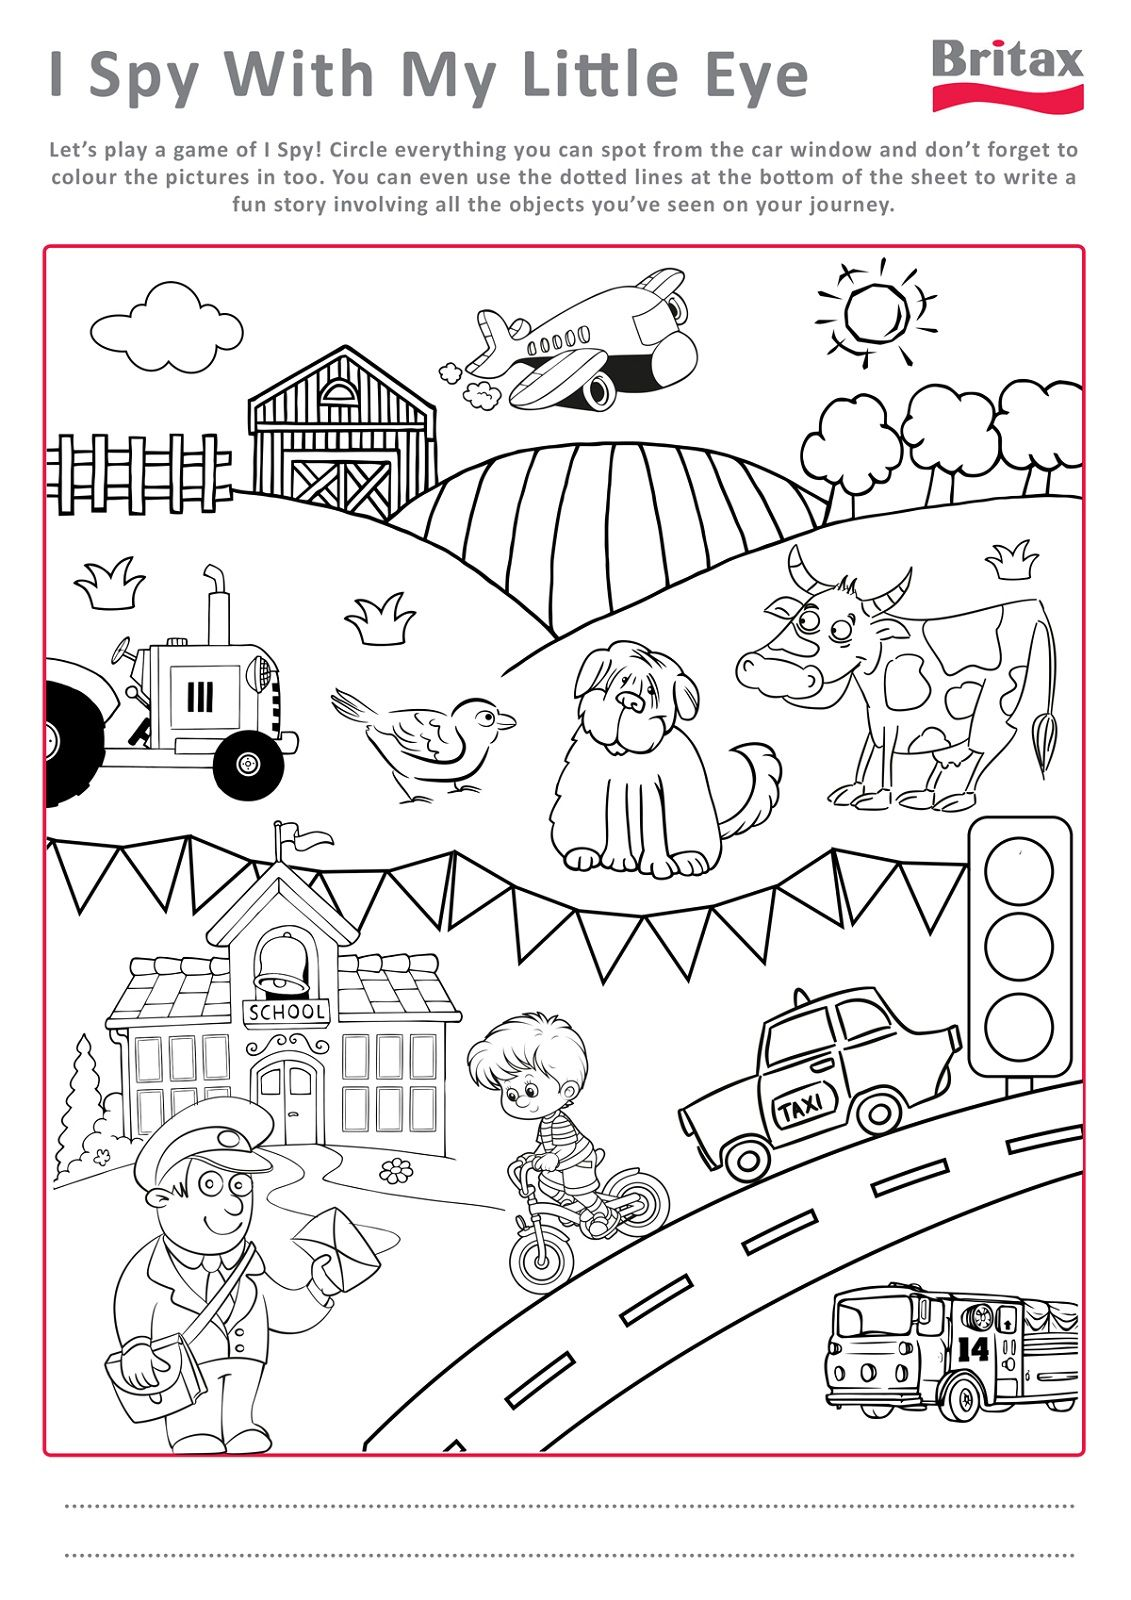 Printable Activity Sheets For Kids In